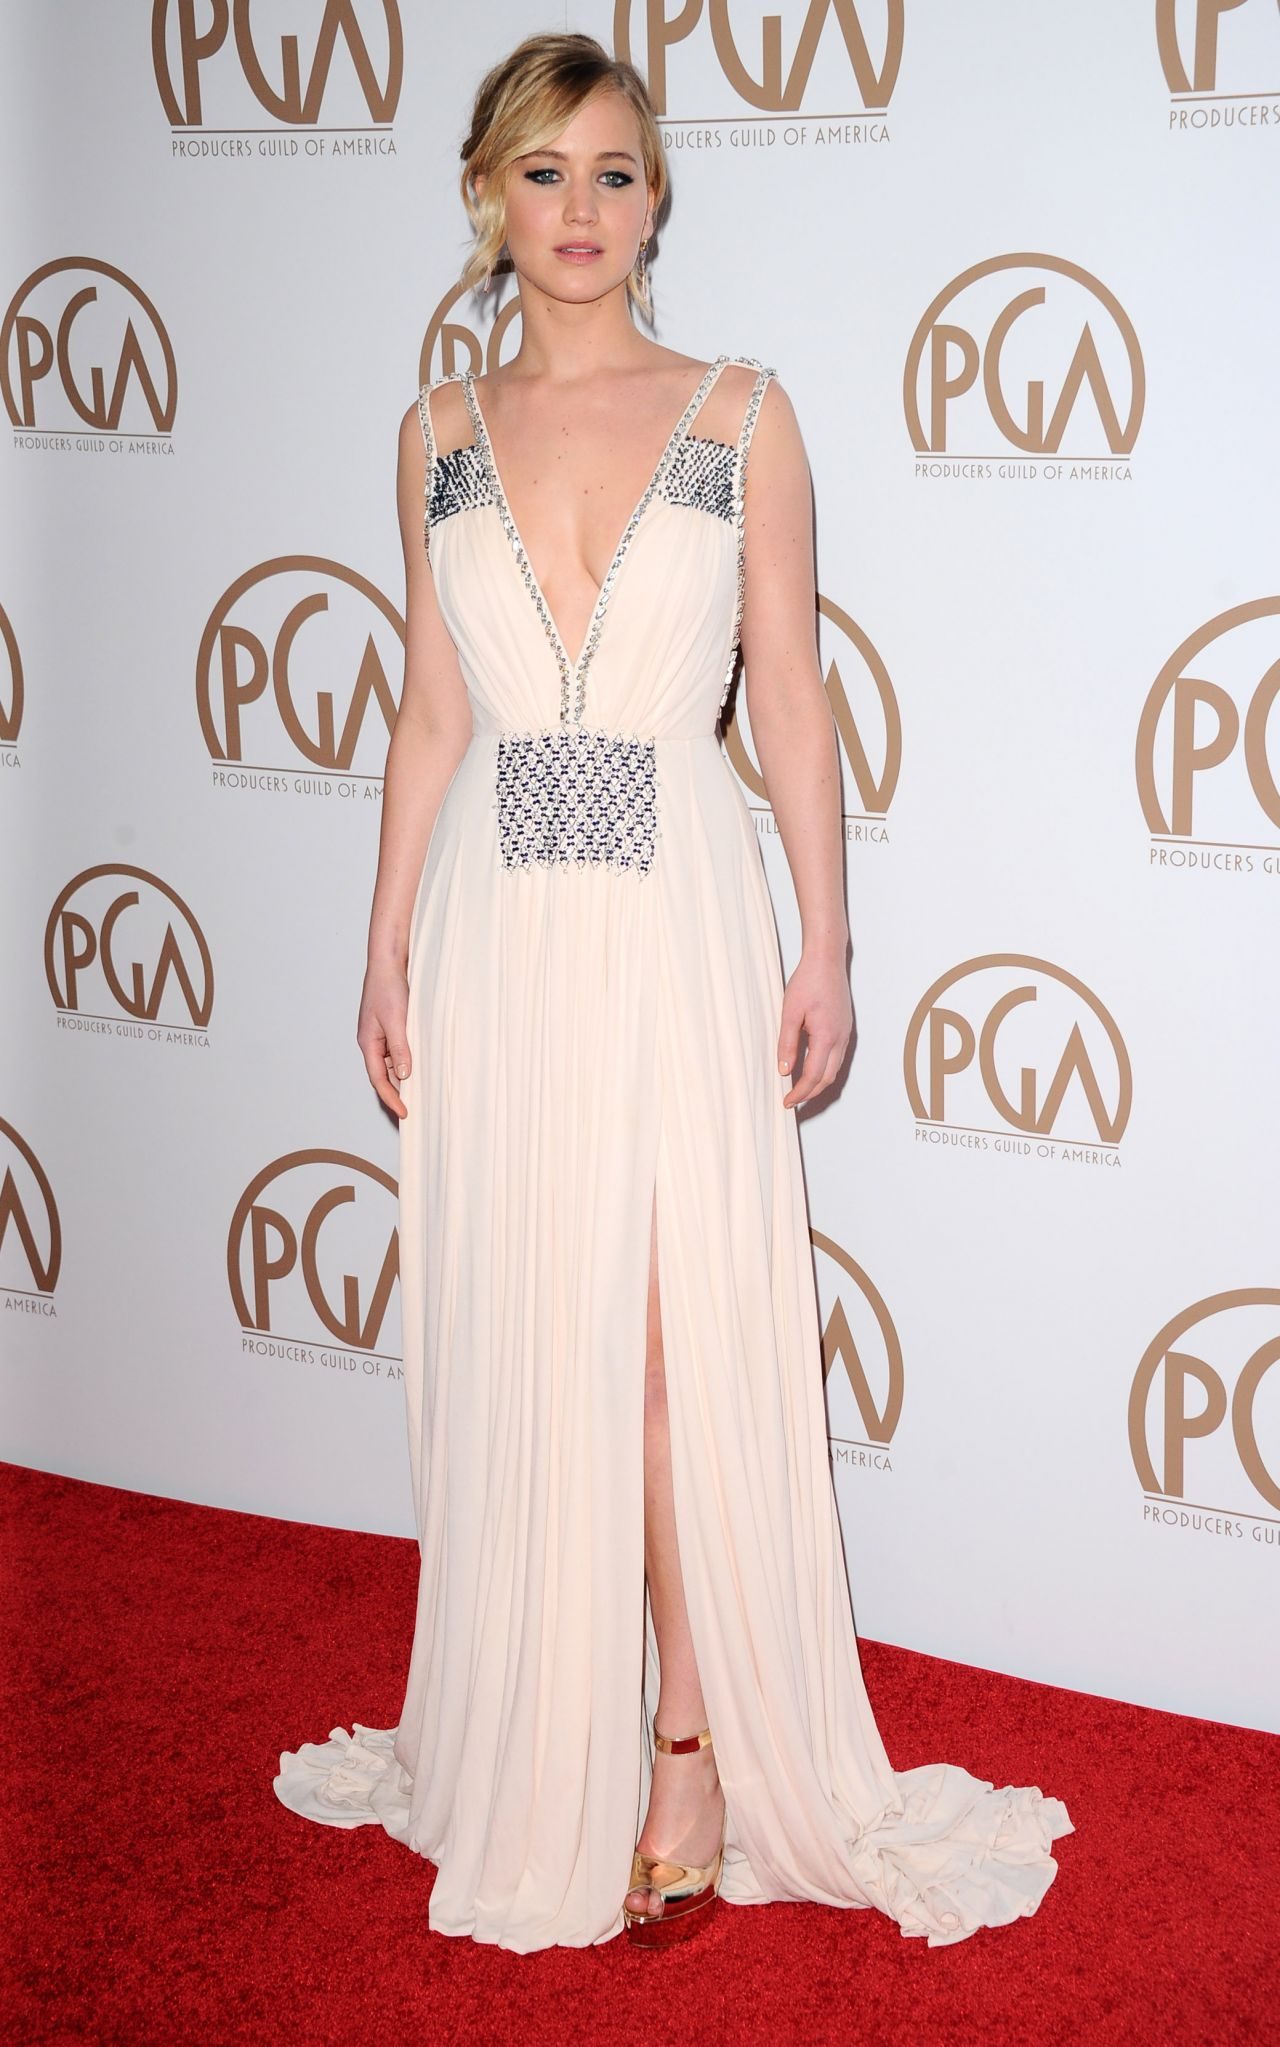 jennifer-lawrence-2015-producers-guild-awards-in-los-angeles_1